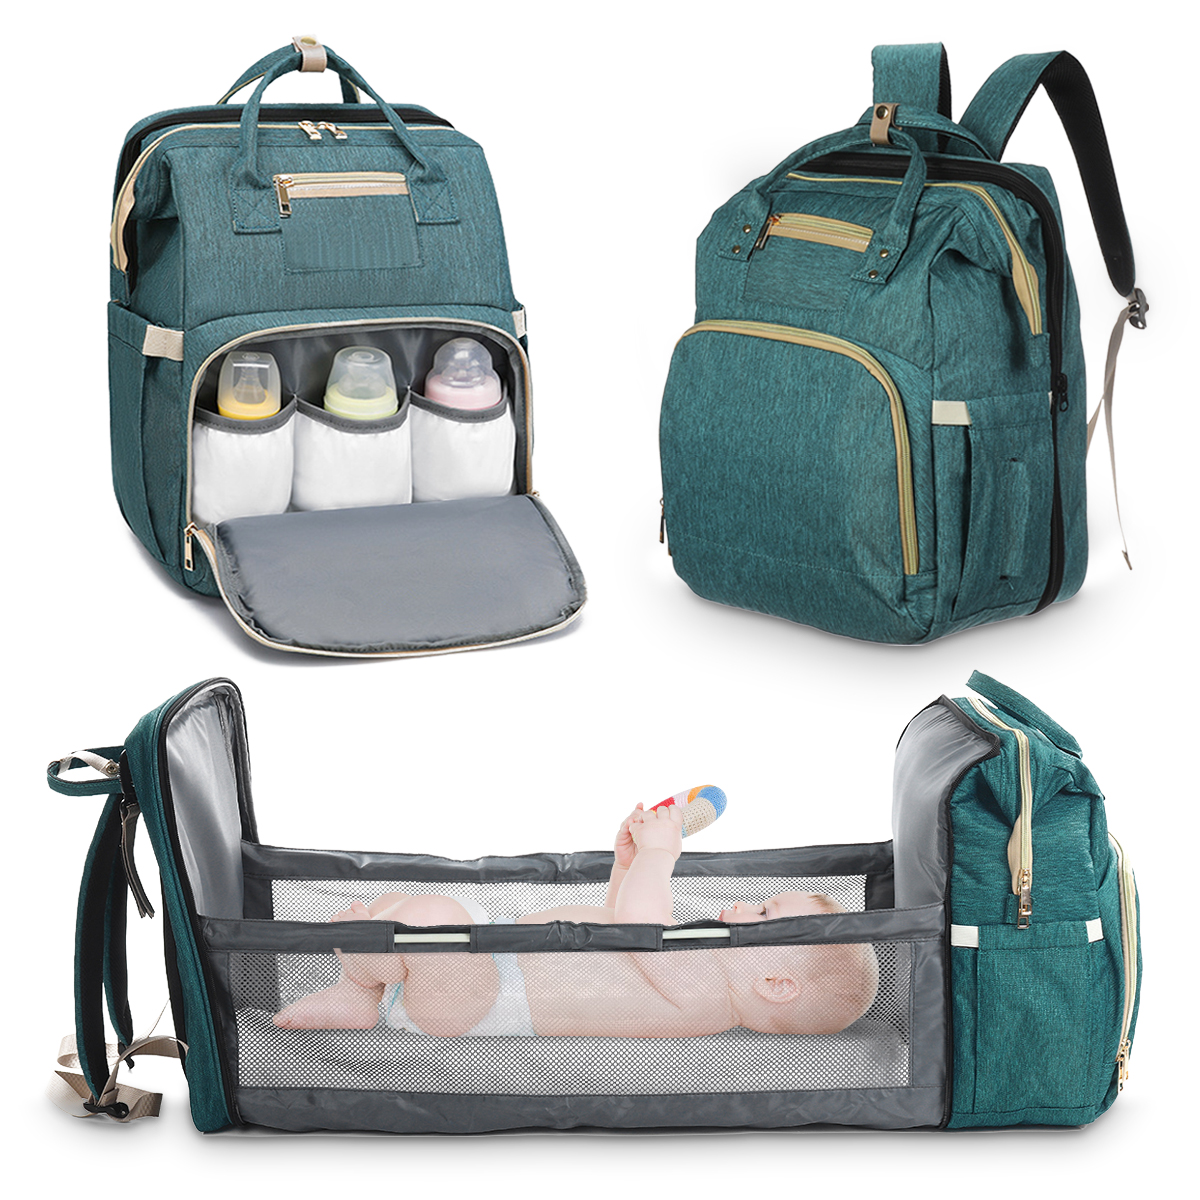 Wedmay Mummy Backpack Foldable Waterproof Travel Cot Bag for Infant Toddler Portable 3 in 1 Baby Nappy Changing Bag Backpack